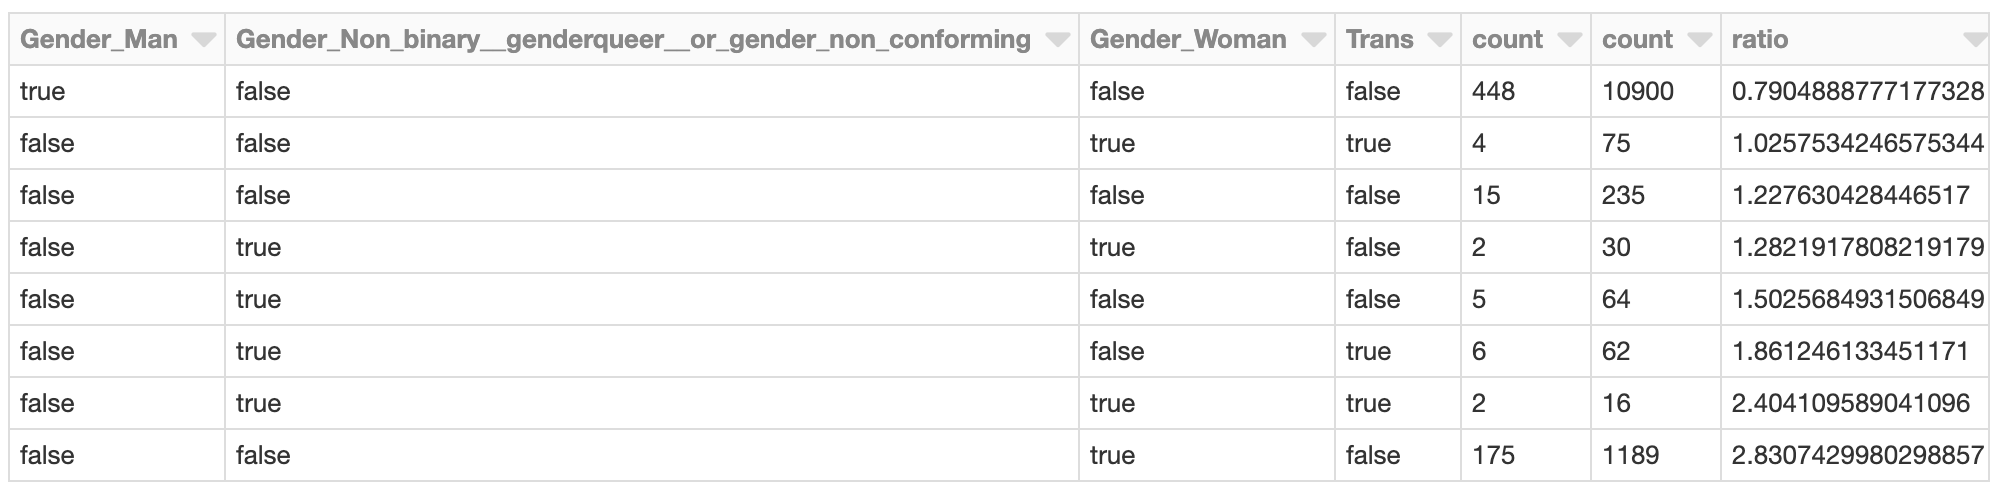 Example table showing relative prevalence of gender identities in the cluster with most-negative gender-related SHAP values.